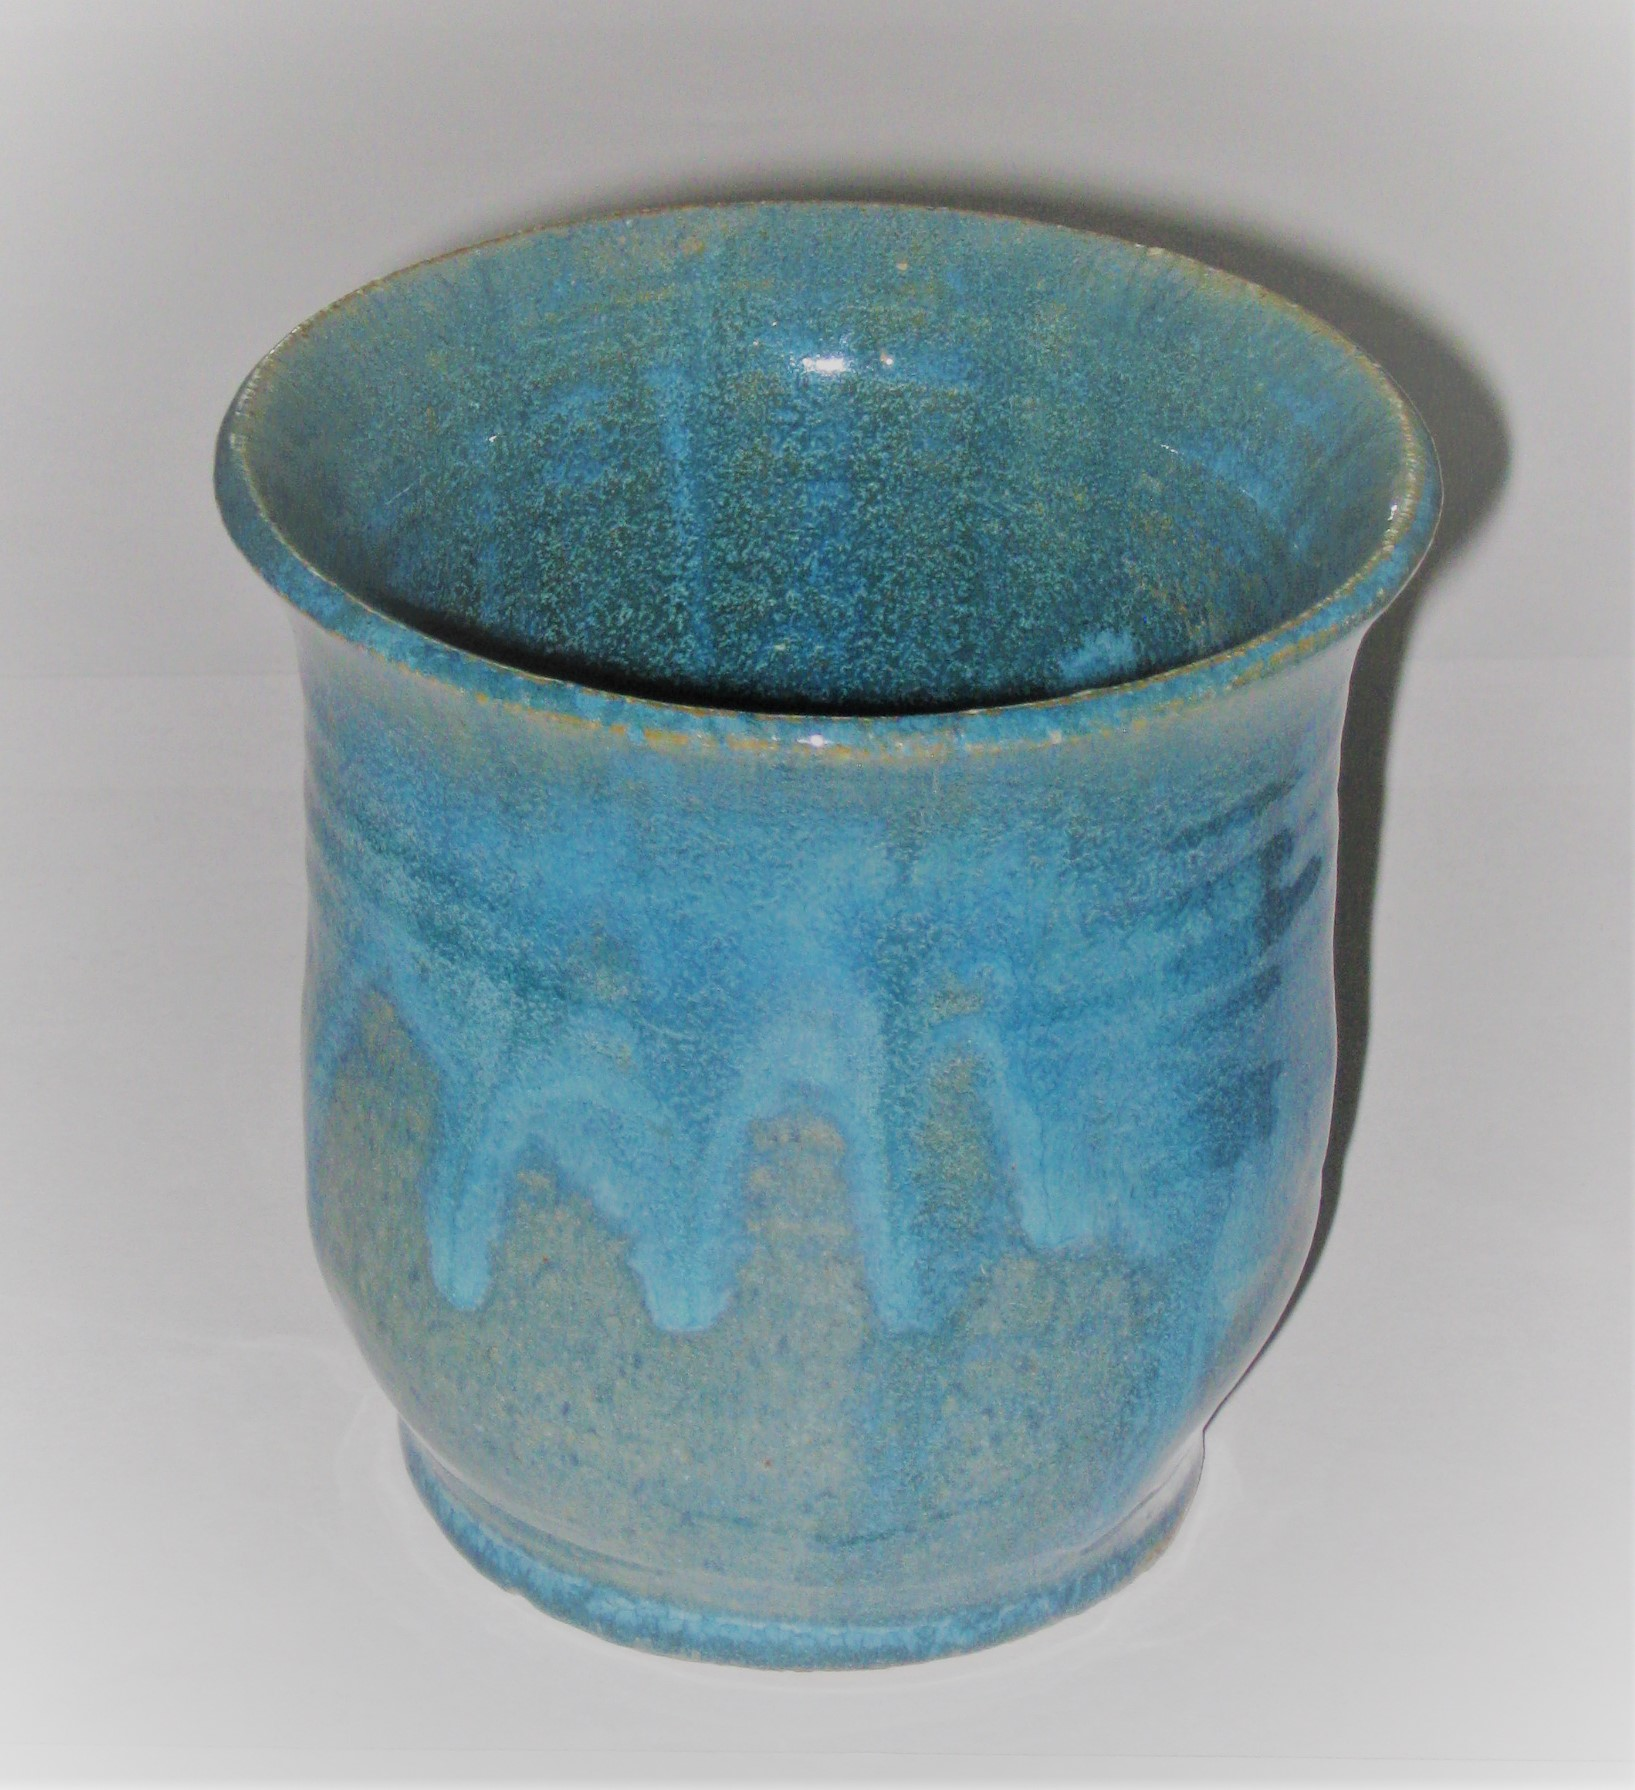 Pot made by Miss Helen Bulkley